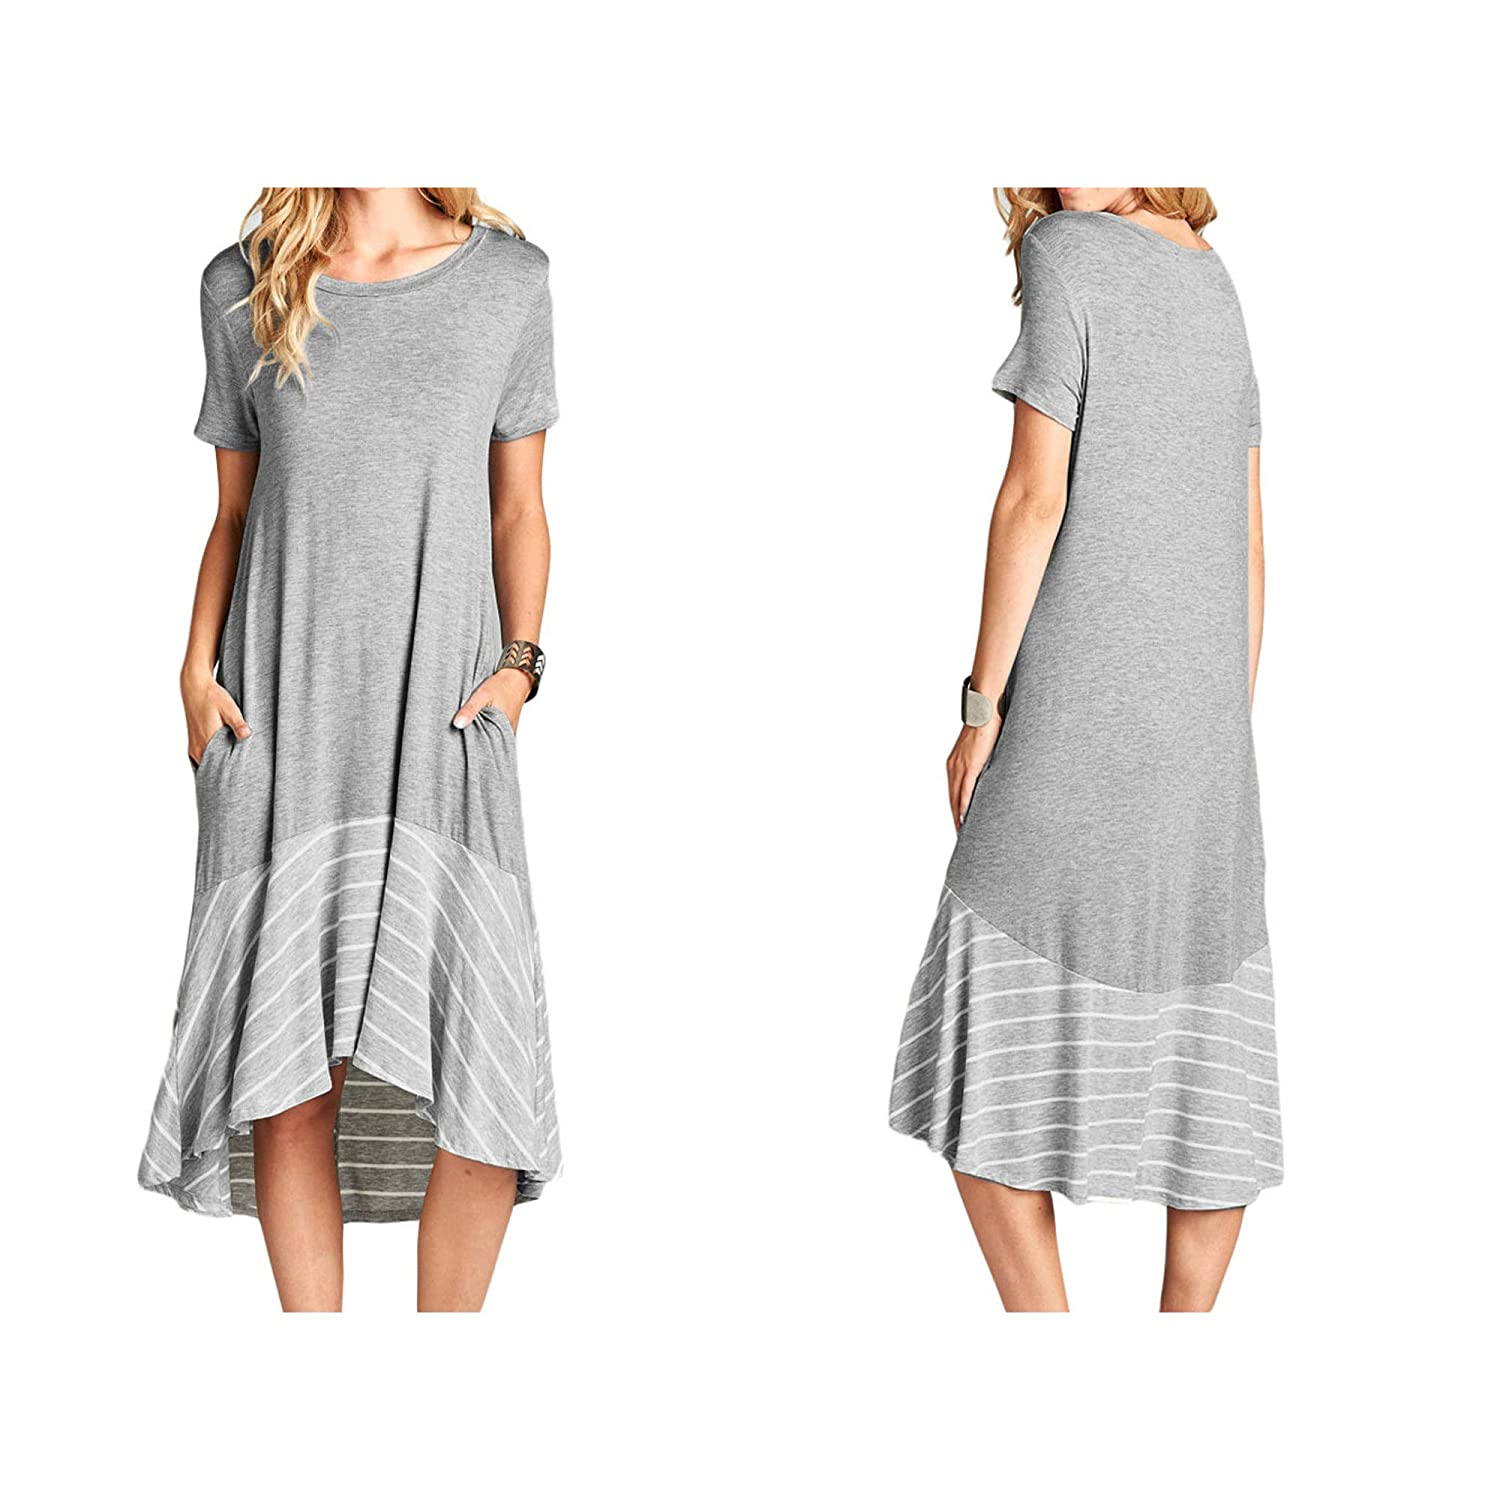 1de1bf42c088 Ancapelion Women's Casual Short Sleeve T Shirt Dress Loose Patchwork Midi  Dress with Pocket at Amazon Women's Clothing store: